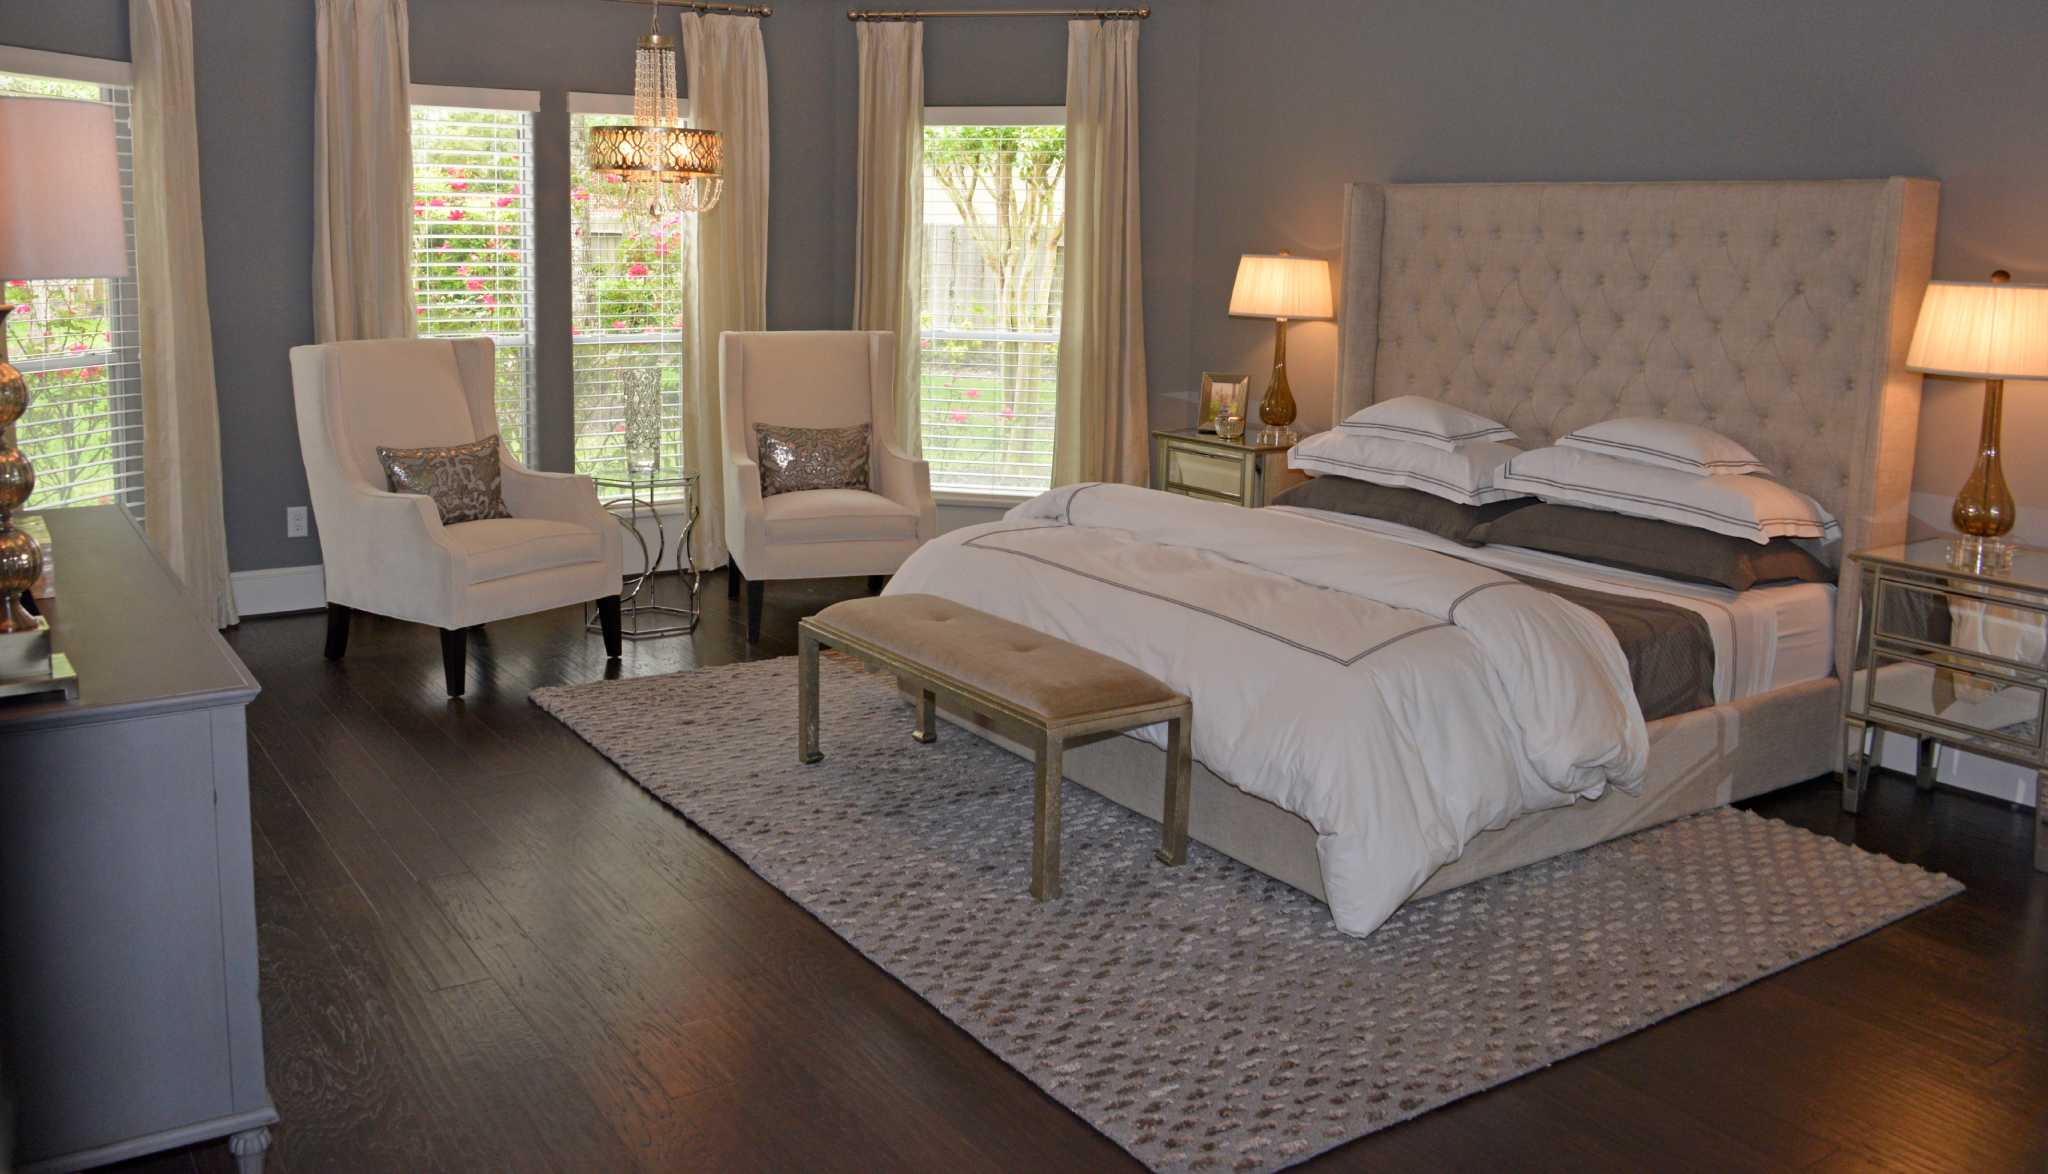 Make The Master Bedroom A Design Compromise